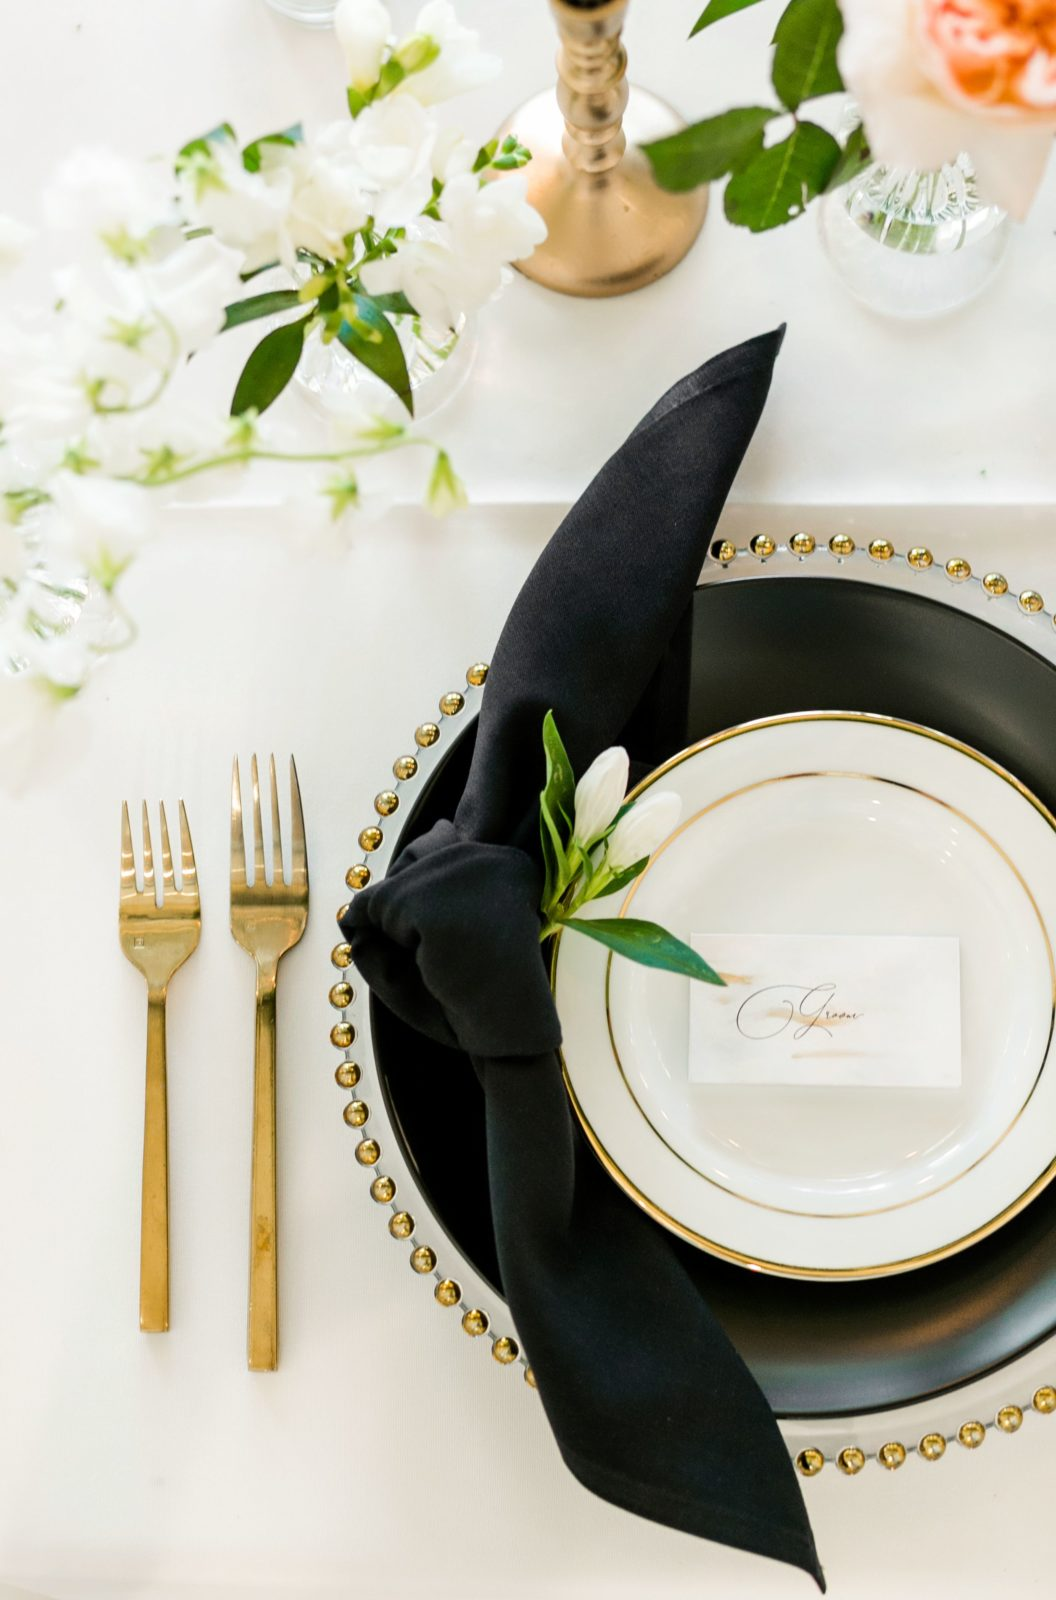 Gold wedding cutlery: Sophisticated and Chic wedding inspiration on Alexa Kay Events